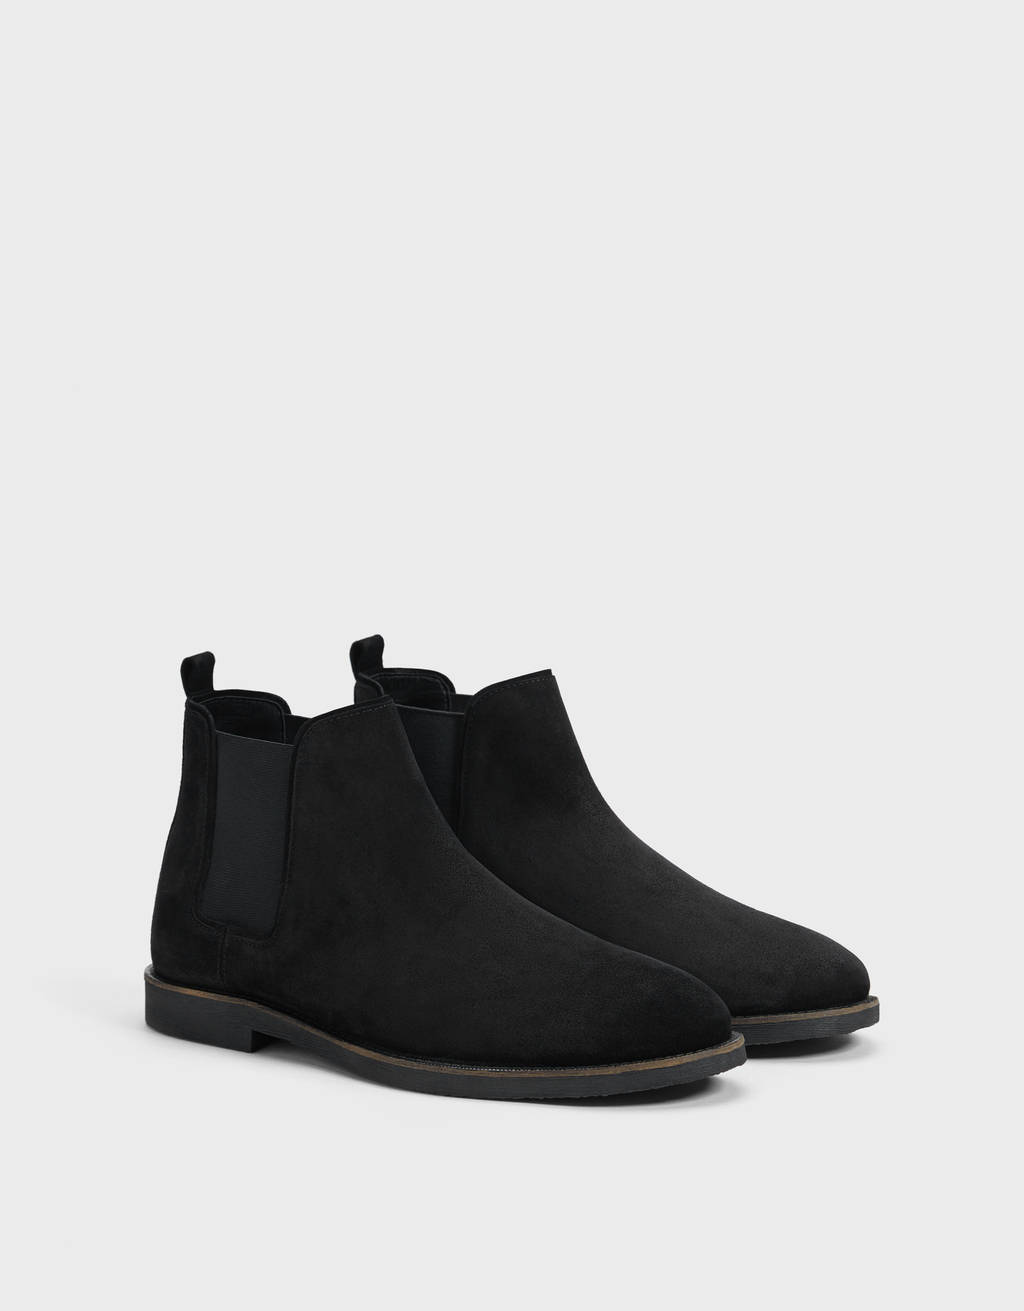 Men's LEATHER ankle boots with elastic gores